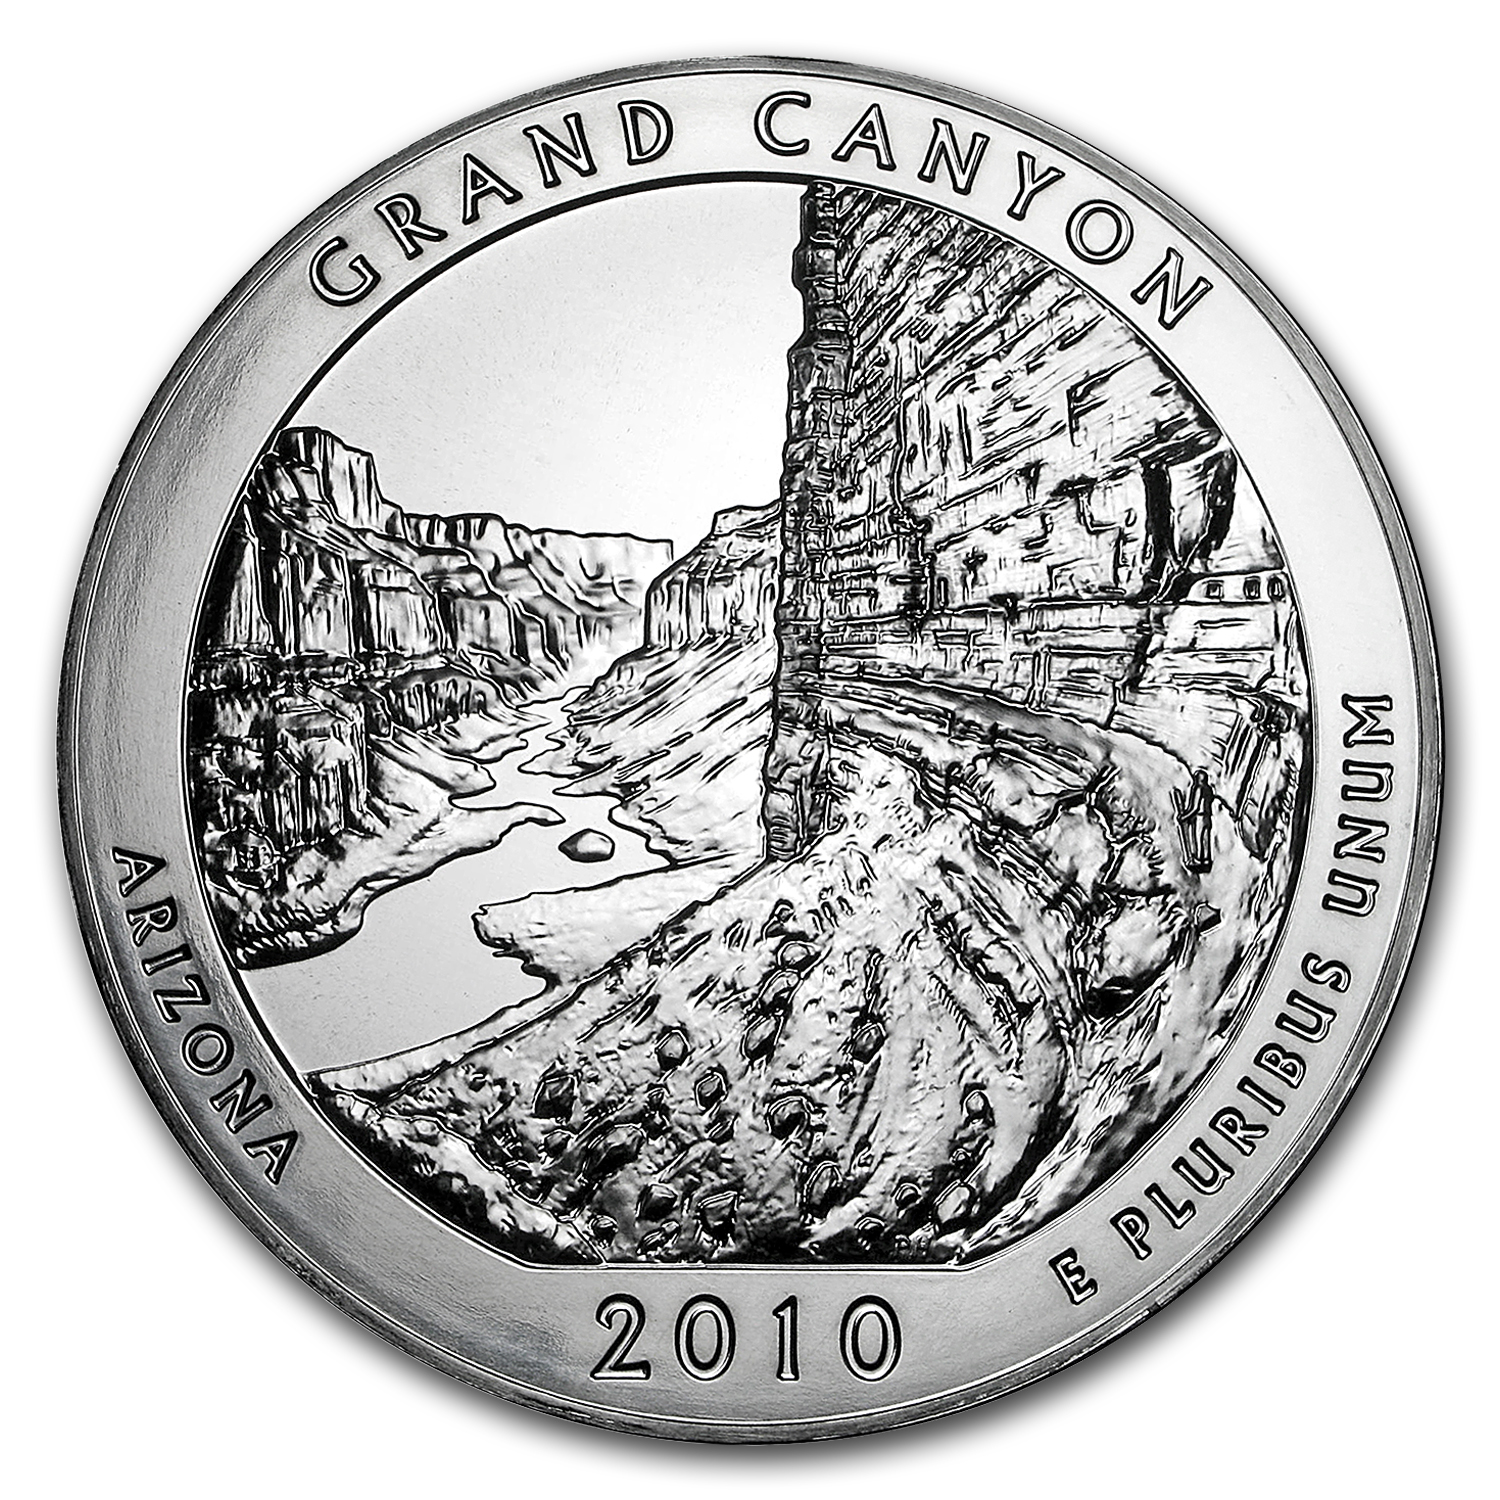 2010 5 oz Silver ATB - Grand Canyon National Park, Arizona